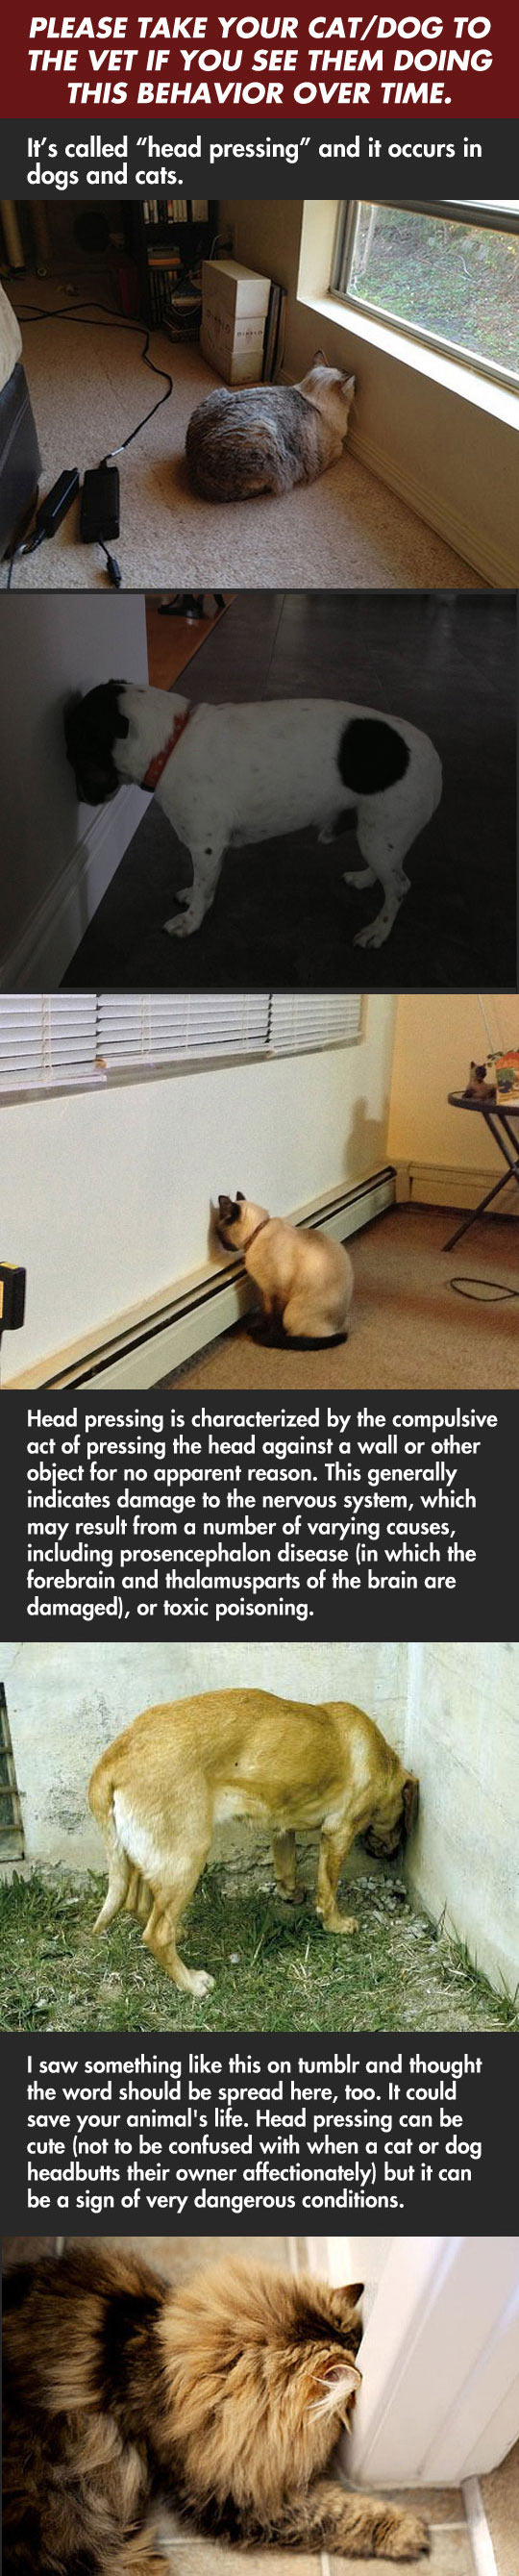 cat-dogs-warning-head-pressing